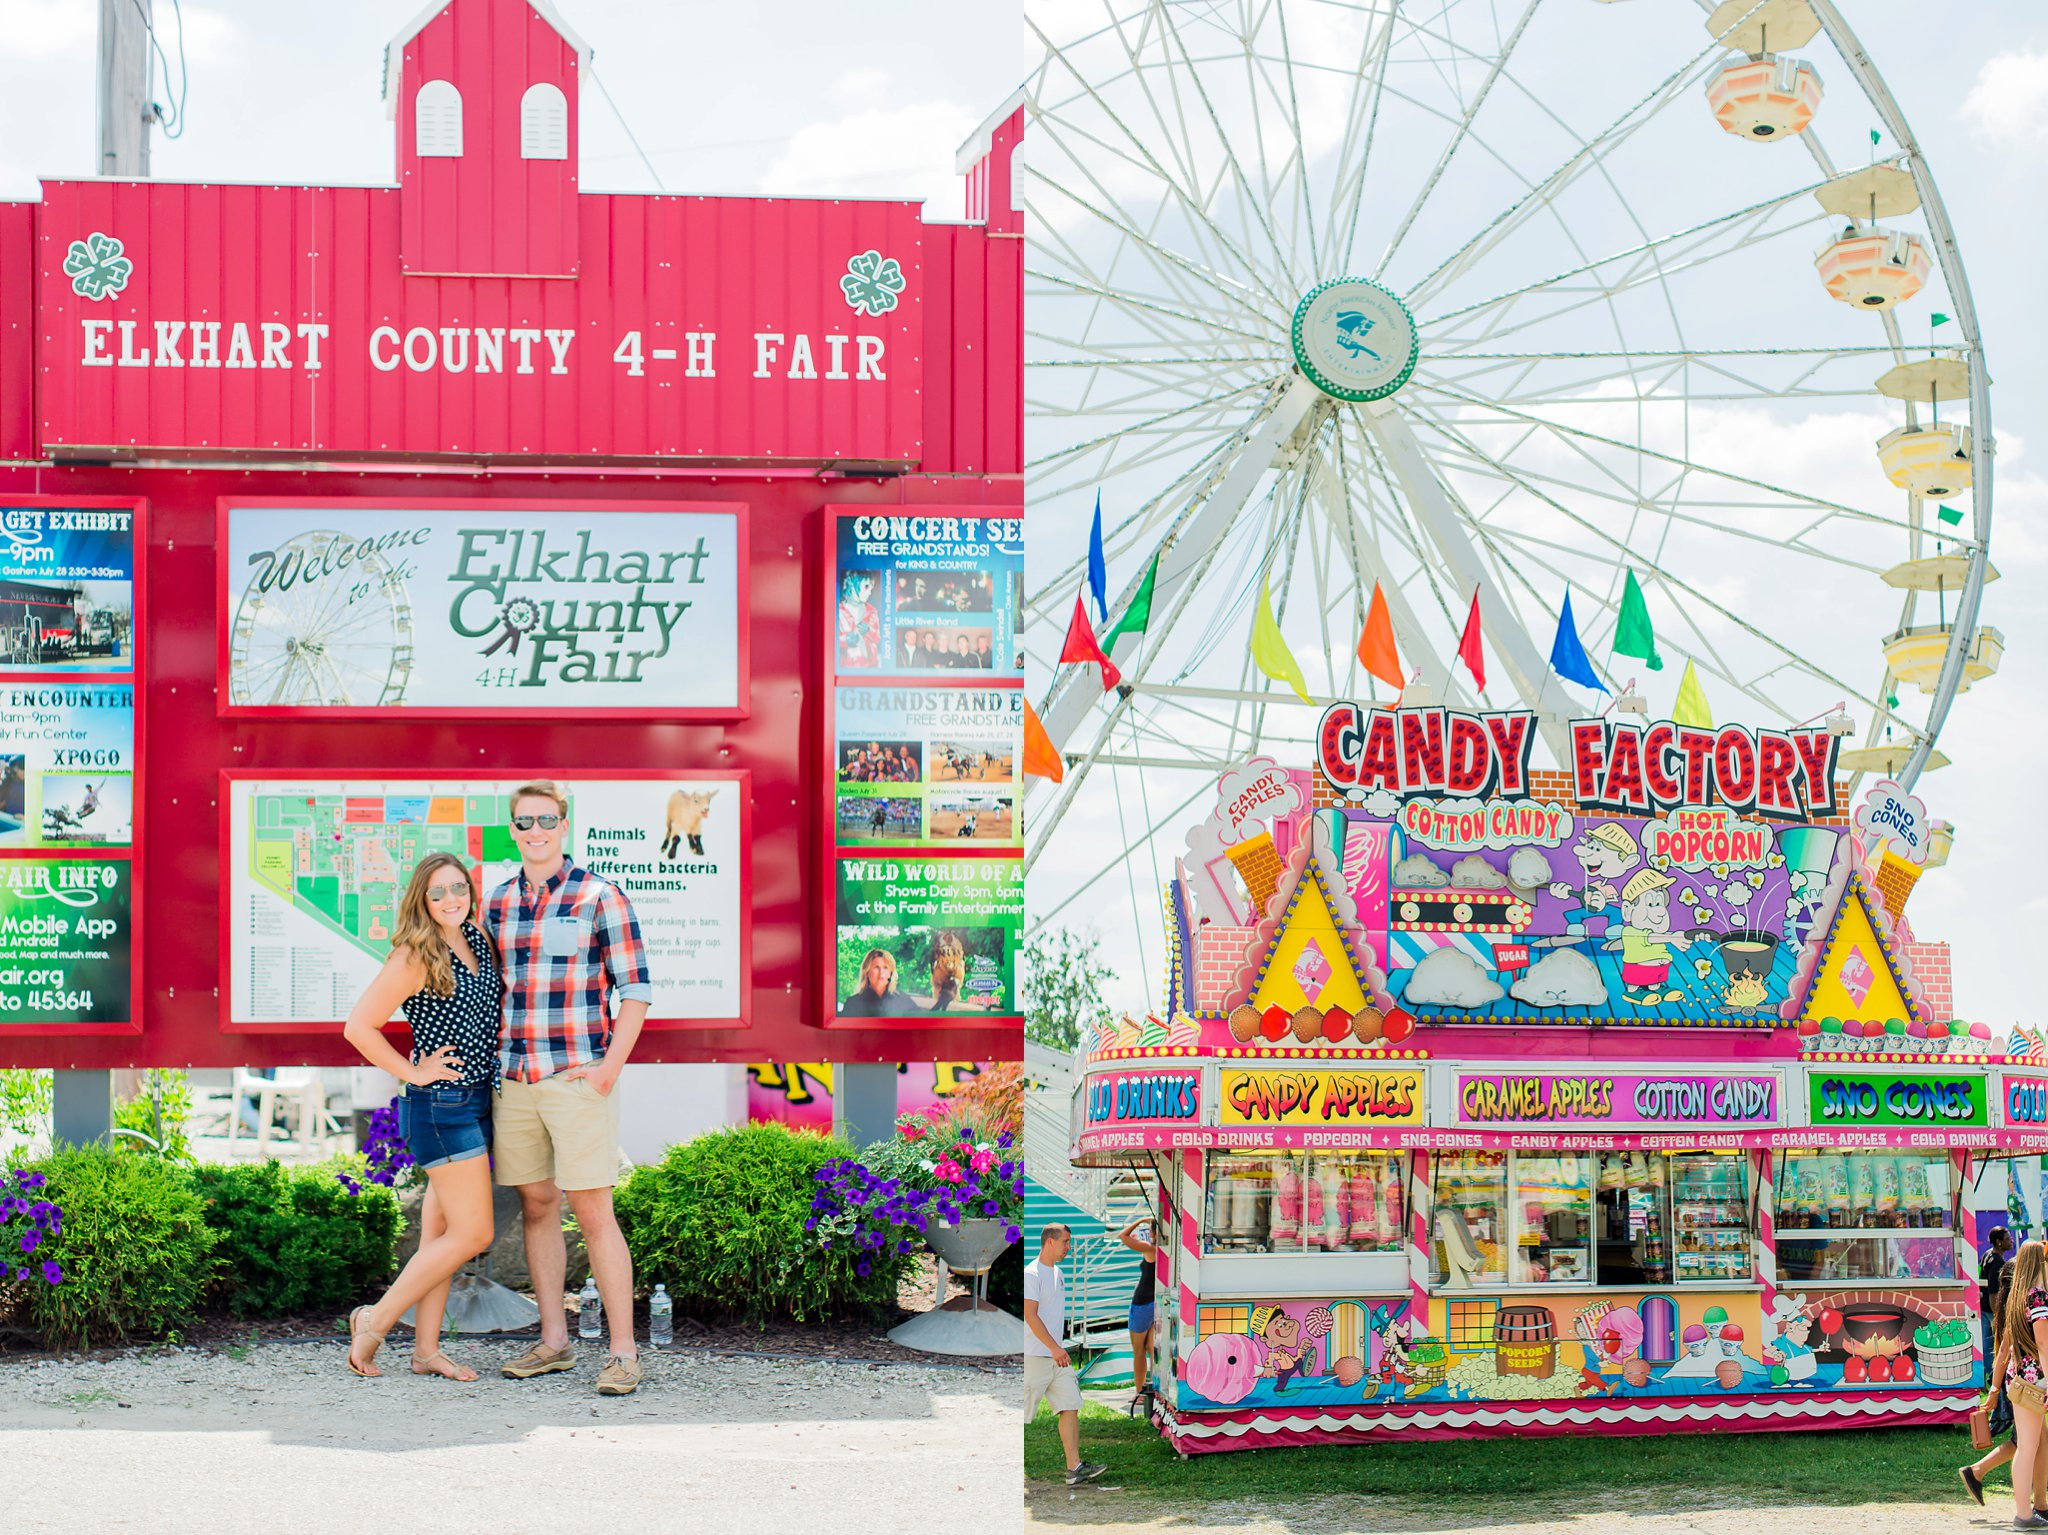 A Day At The Elkhart County 4H Fair | Our 5th Indiana Summer ...